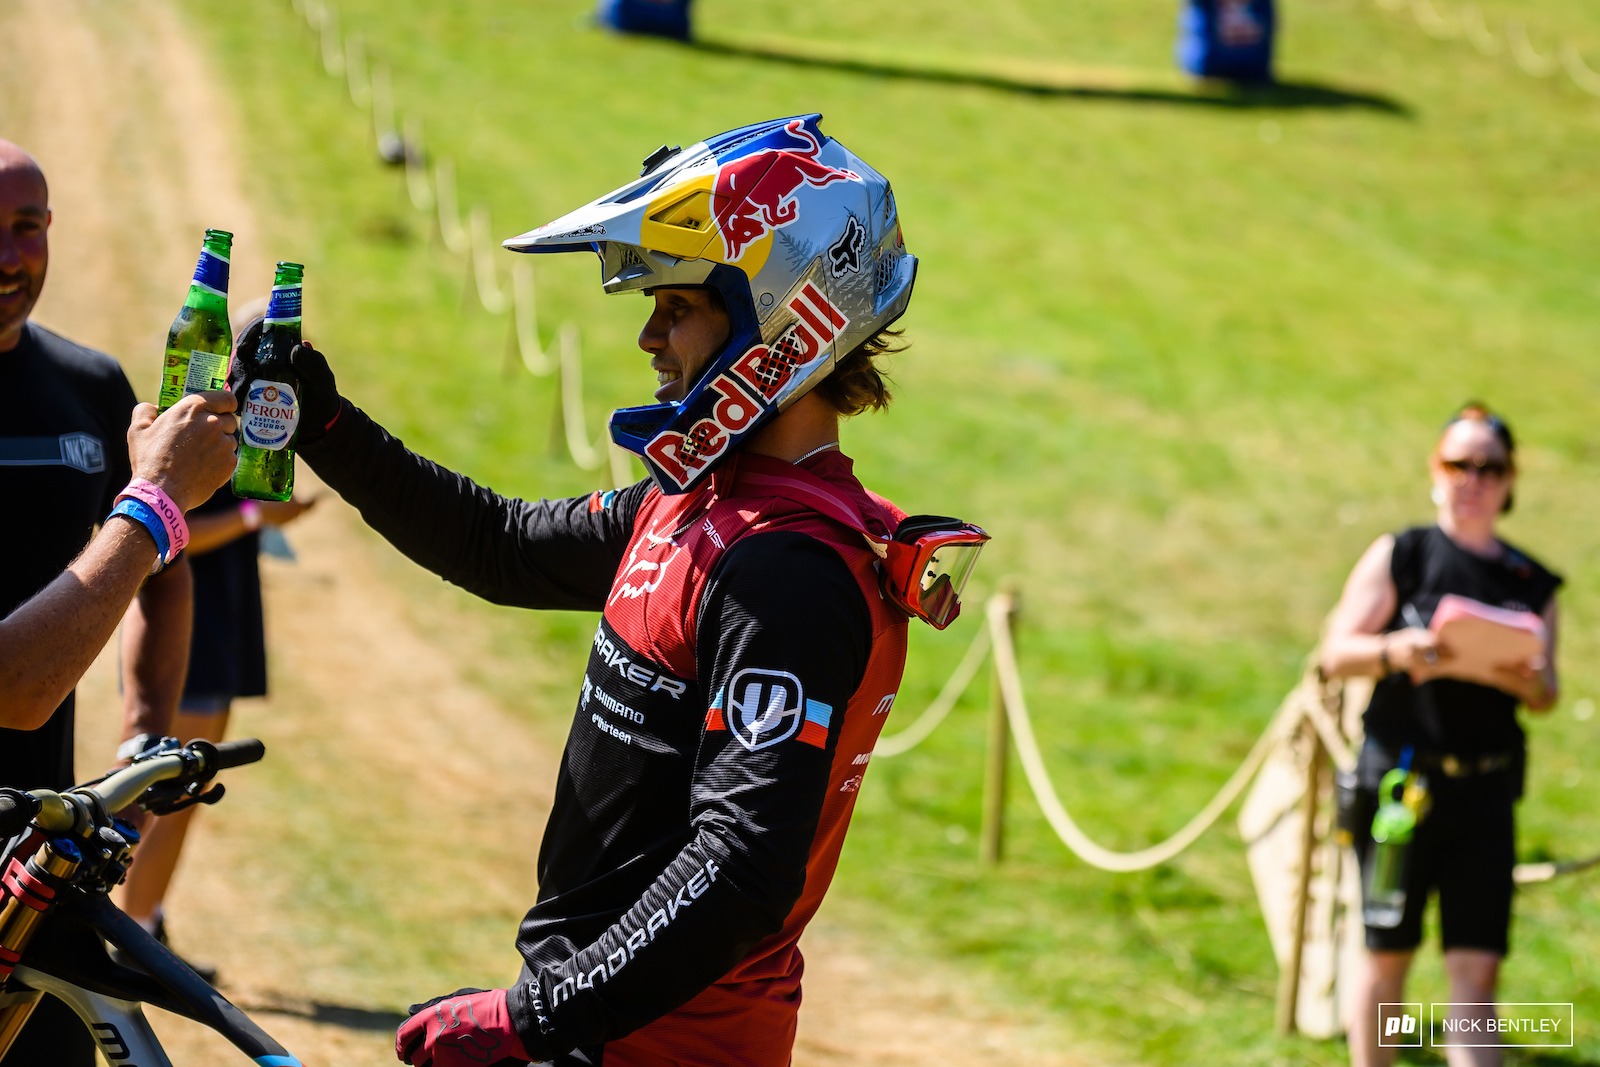 Laurie Greenland finished his run and went straight into the hot seat with his mechanic supplying him with a fresh cold beer at the first opportunity.